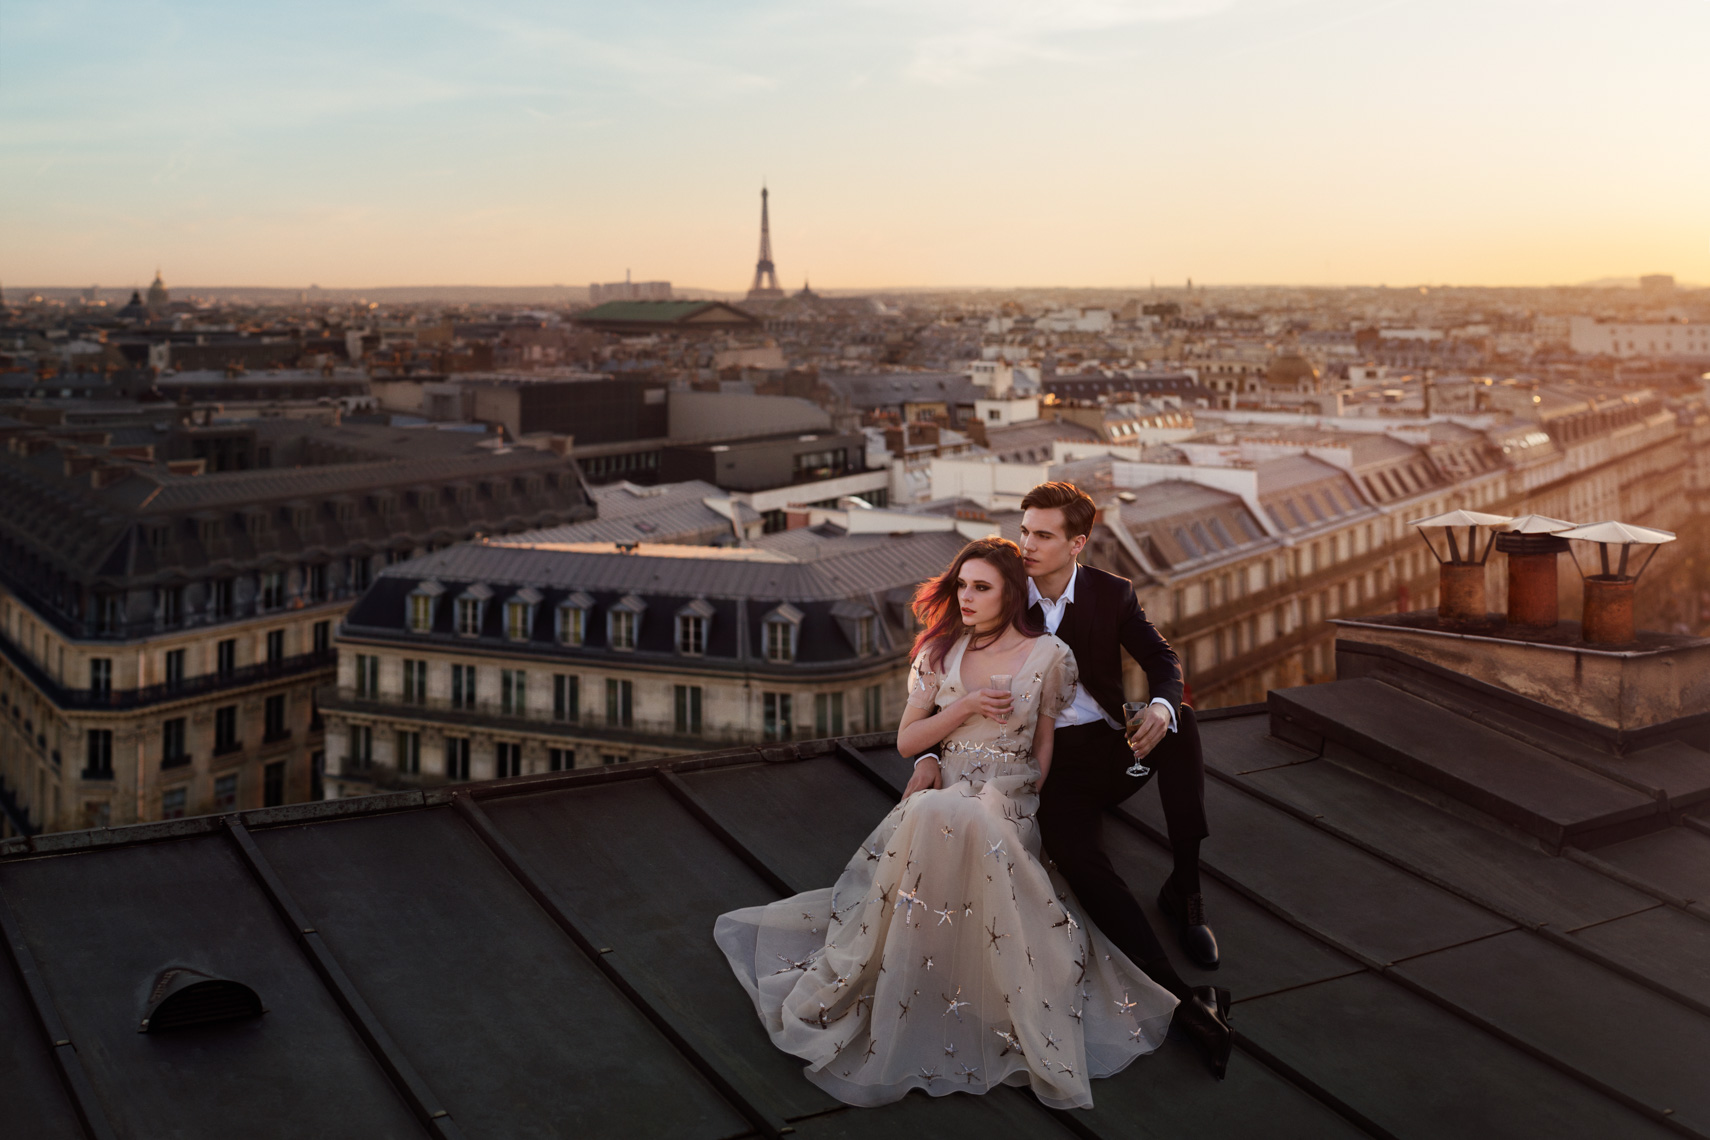 FallForFrance2015-Paris_Rooftop_V3_HighRes-15